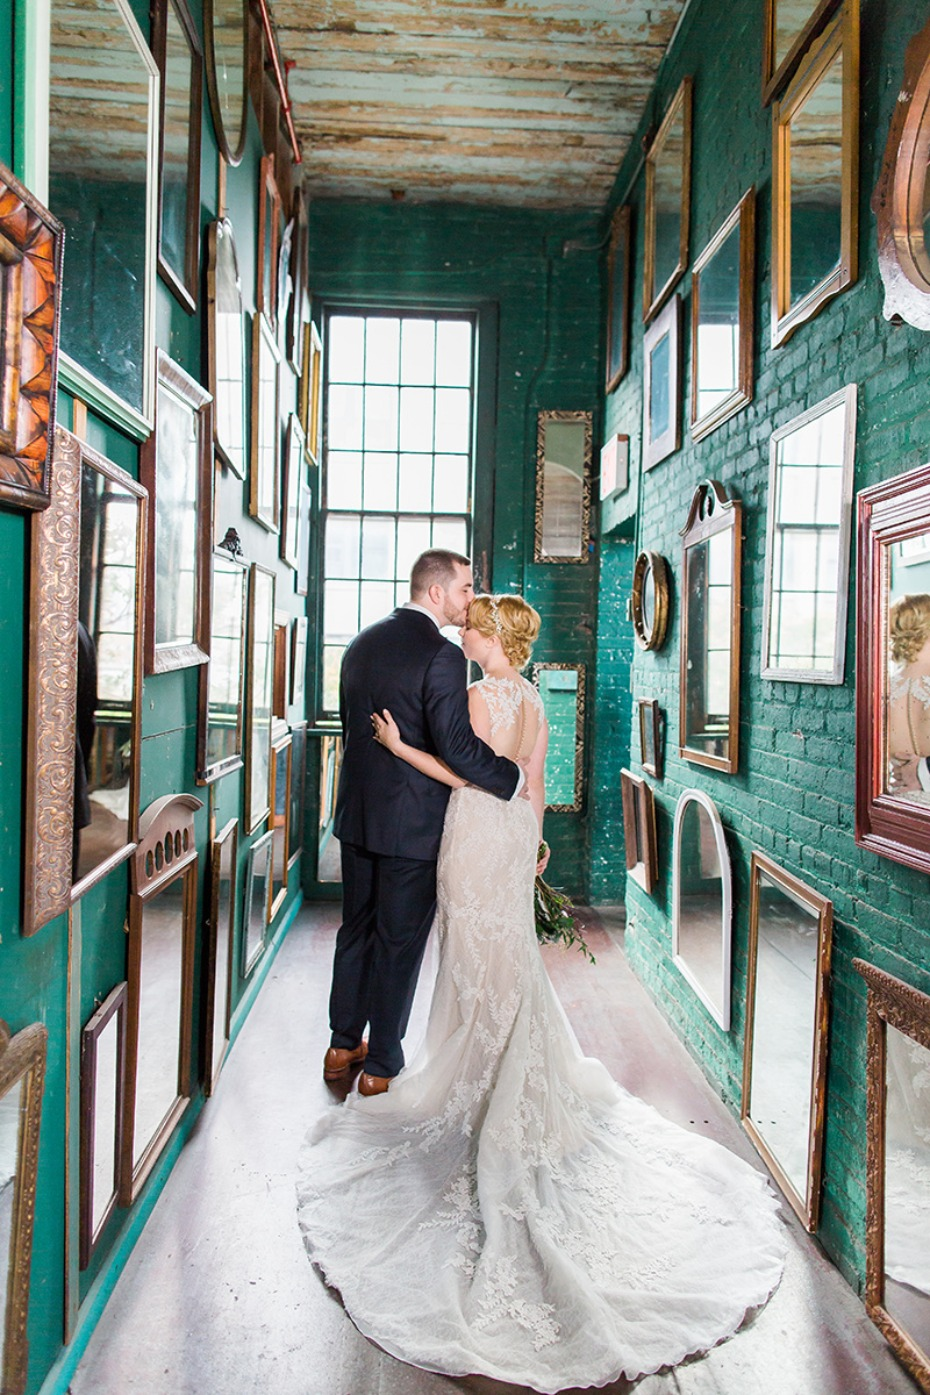 How To Perfectly Incorporate Your Hometown Into Your Wedding